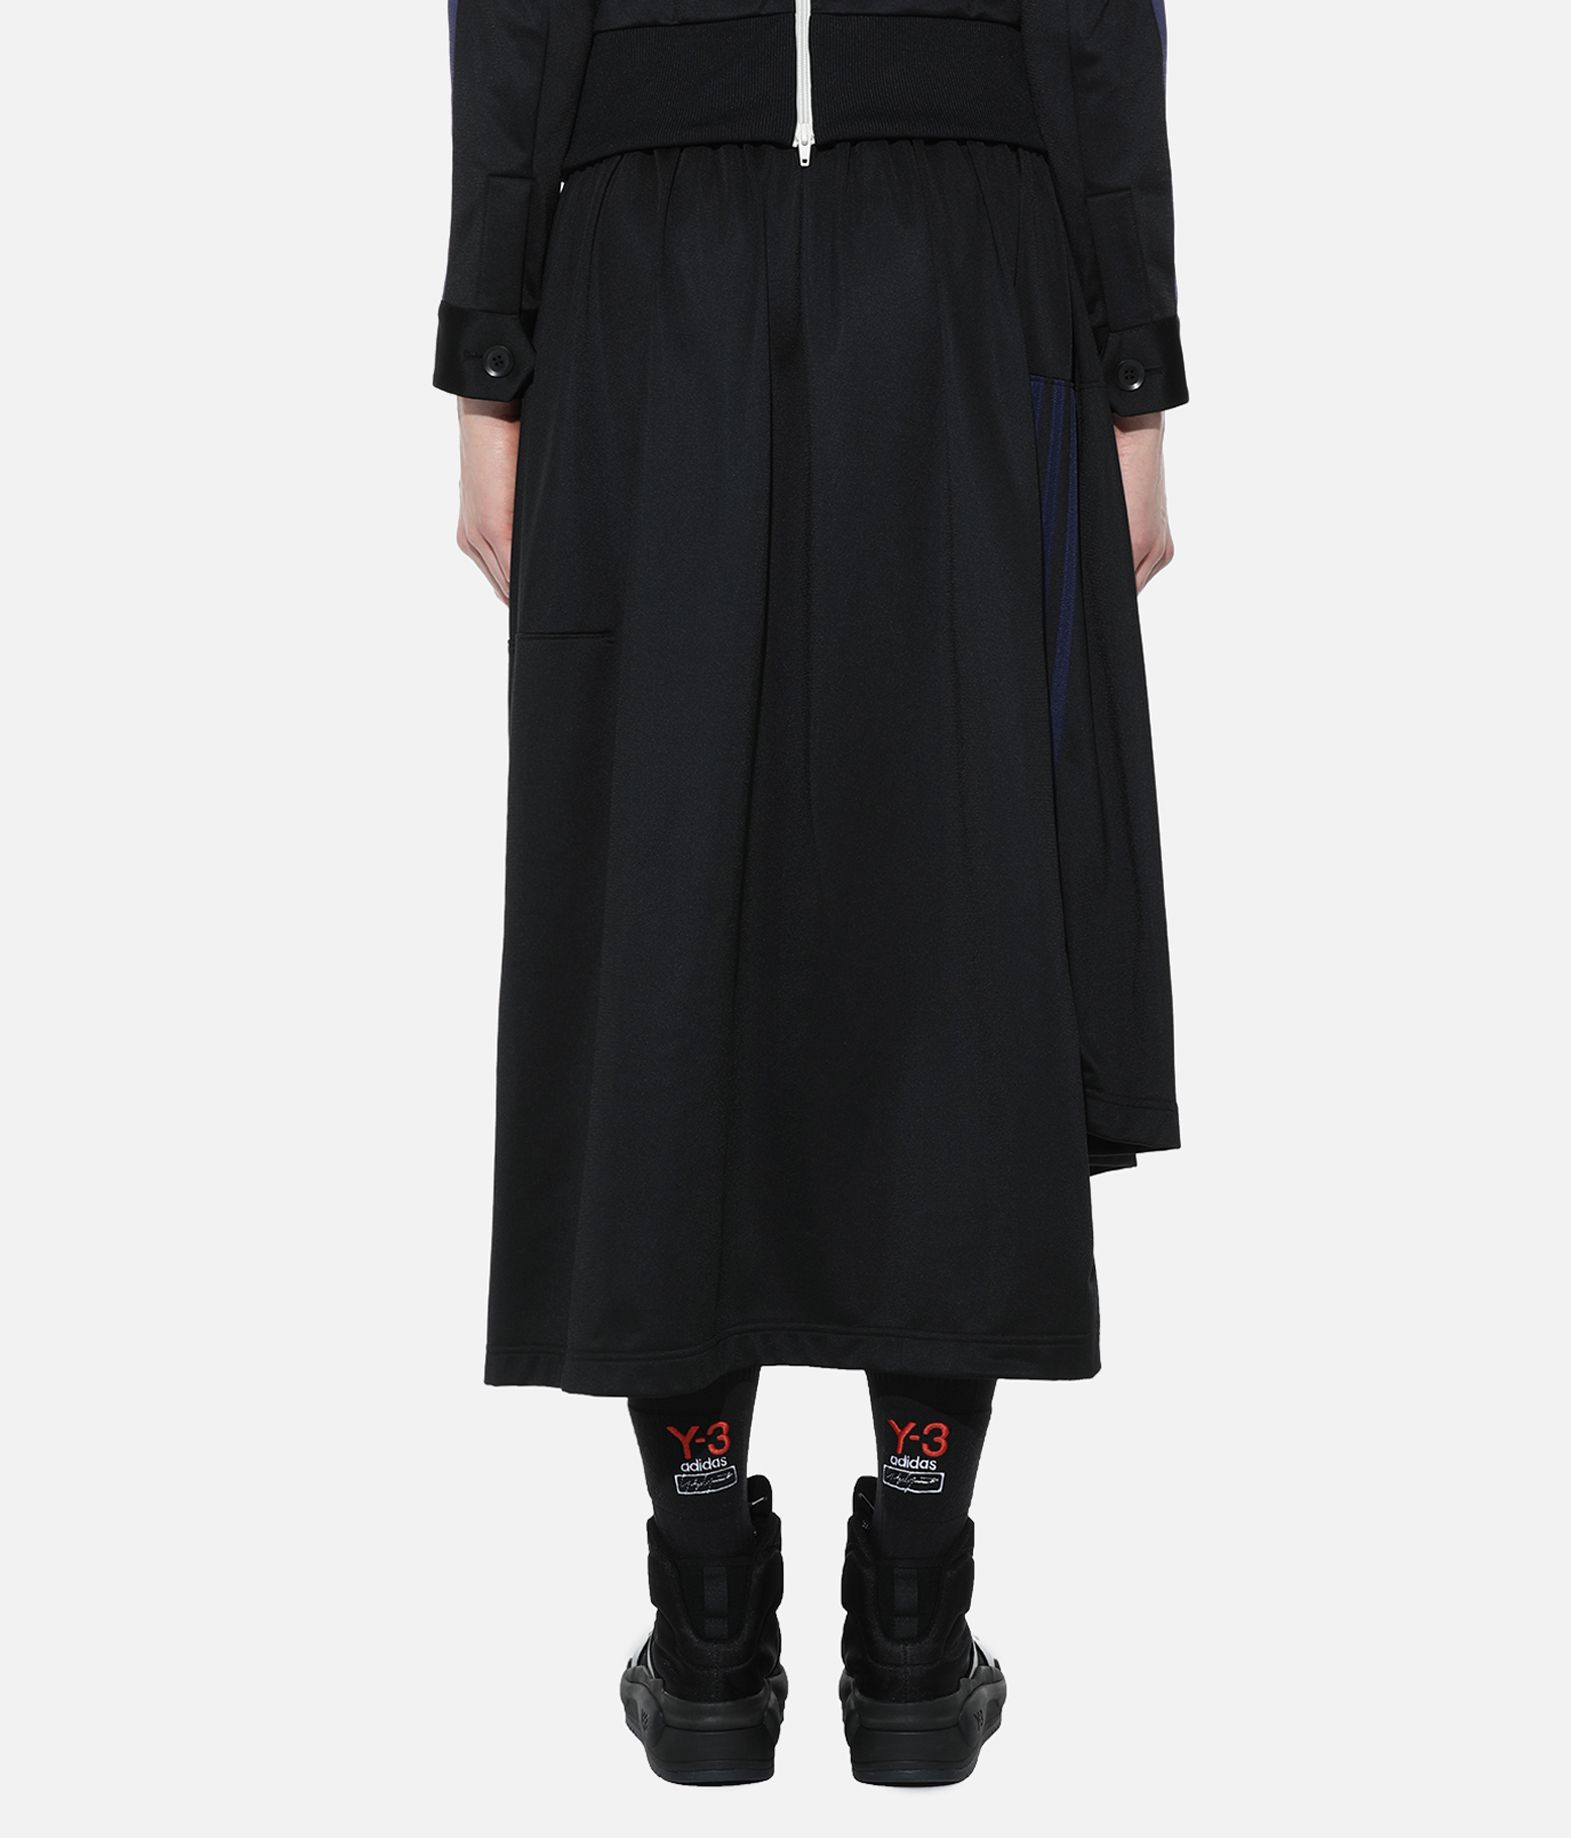 Y-3 Y-3 Firebird Track Skirt 3/4 length skirt Woman d